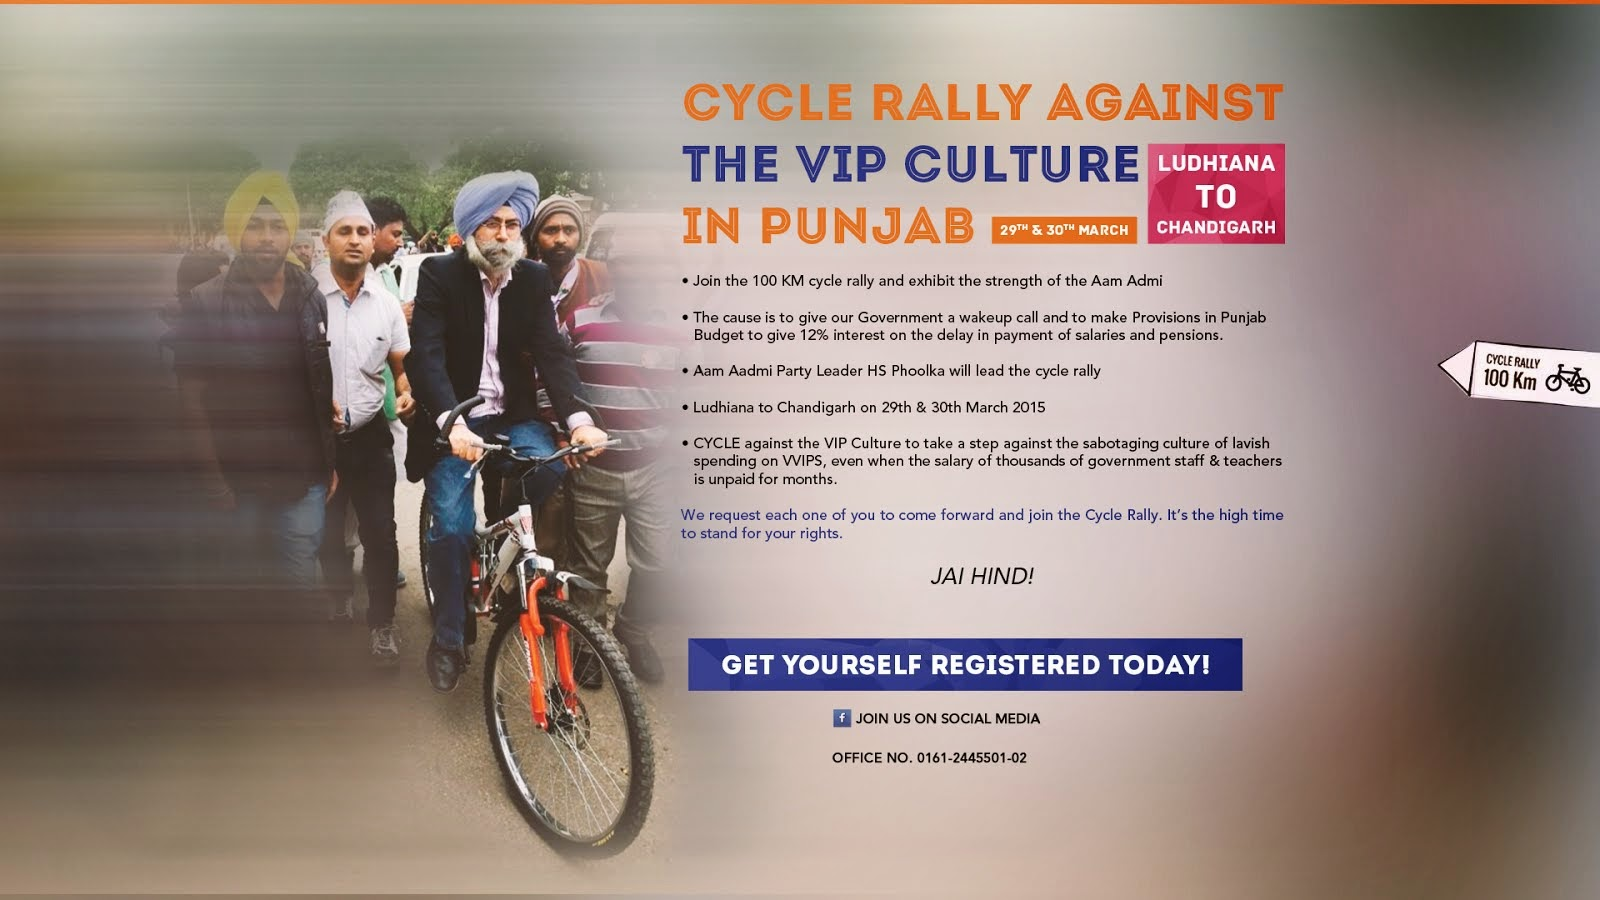 Cycle Rally Against The VIP Culture in Punjab